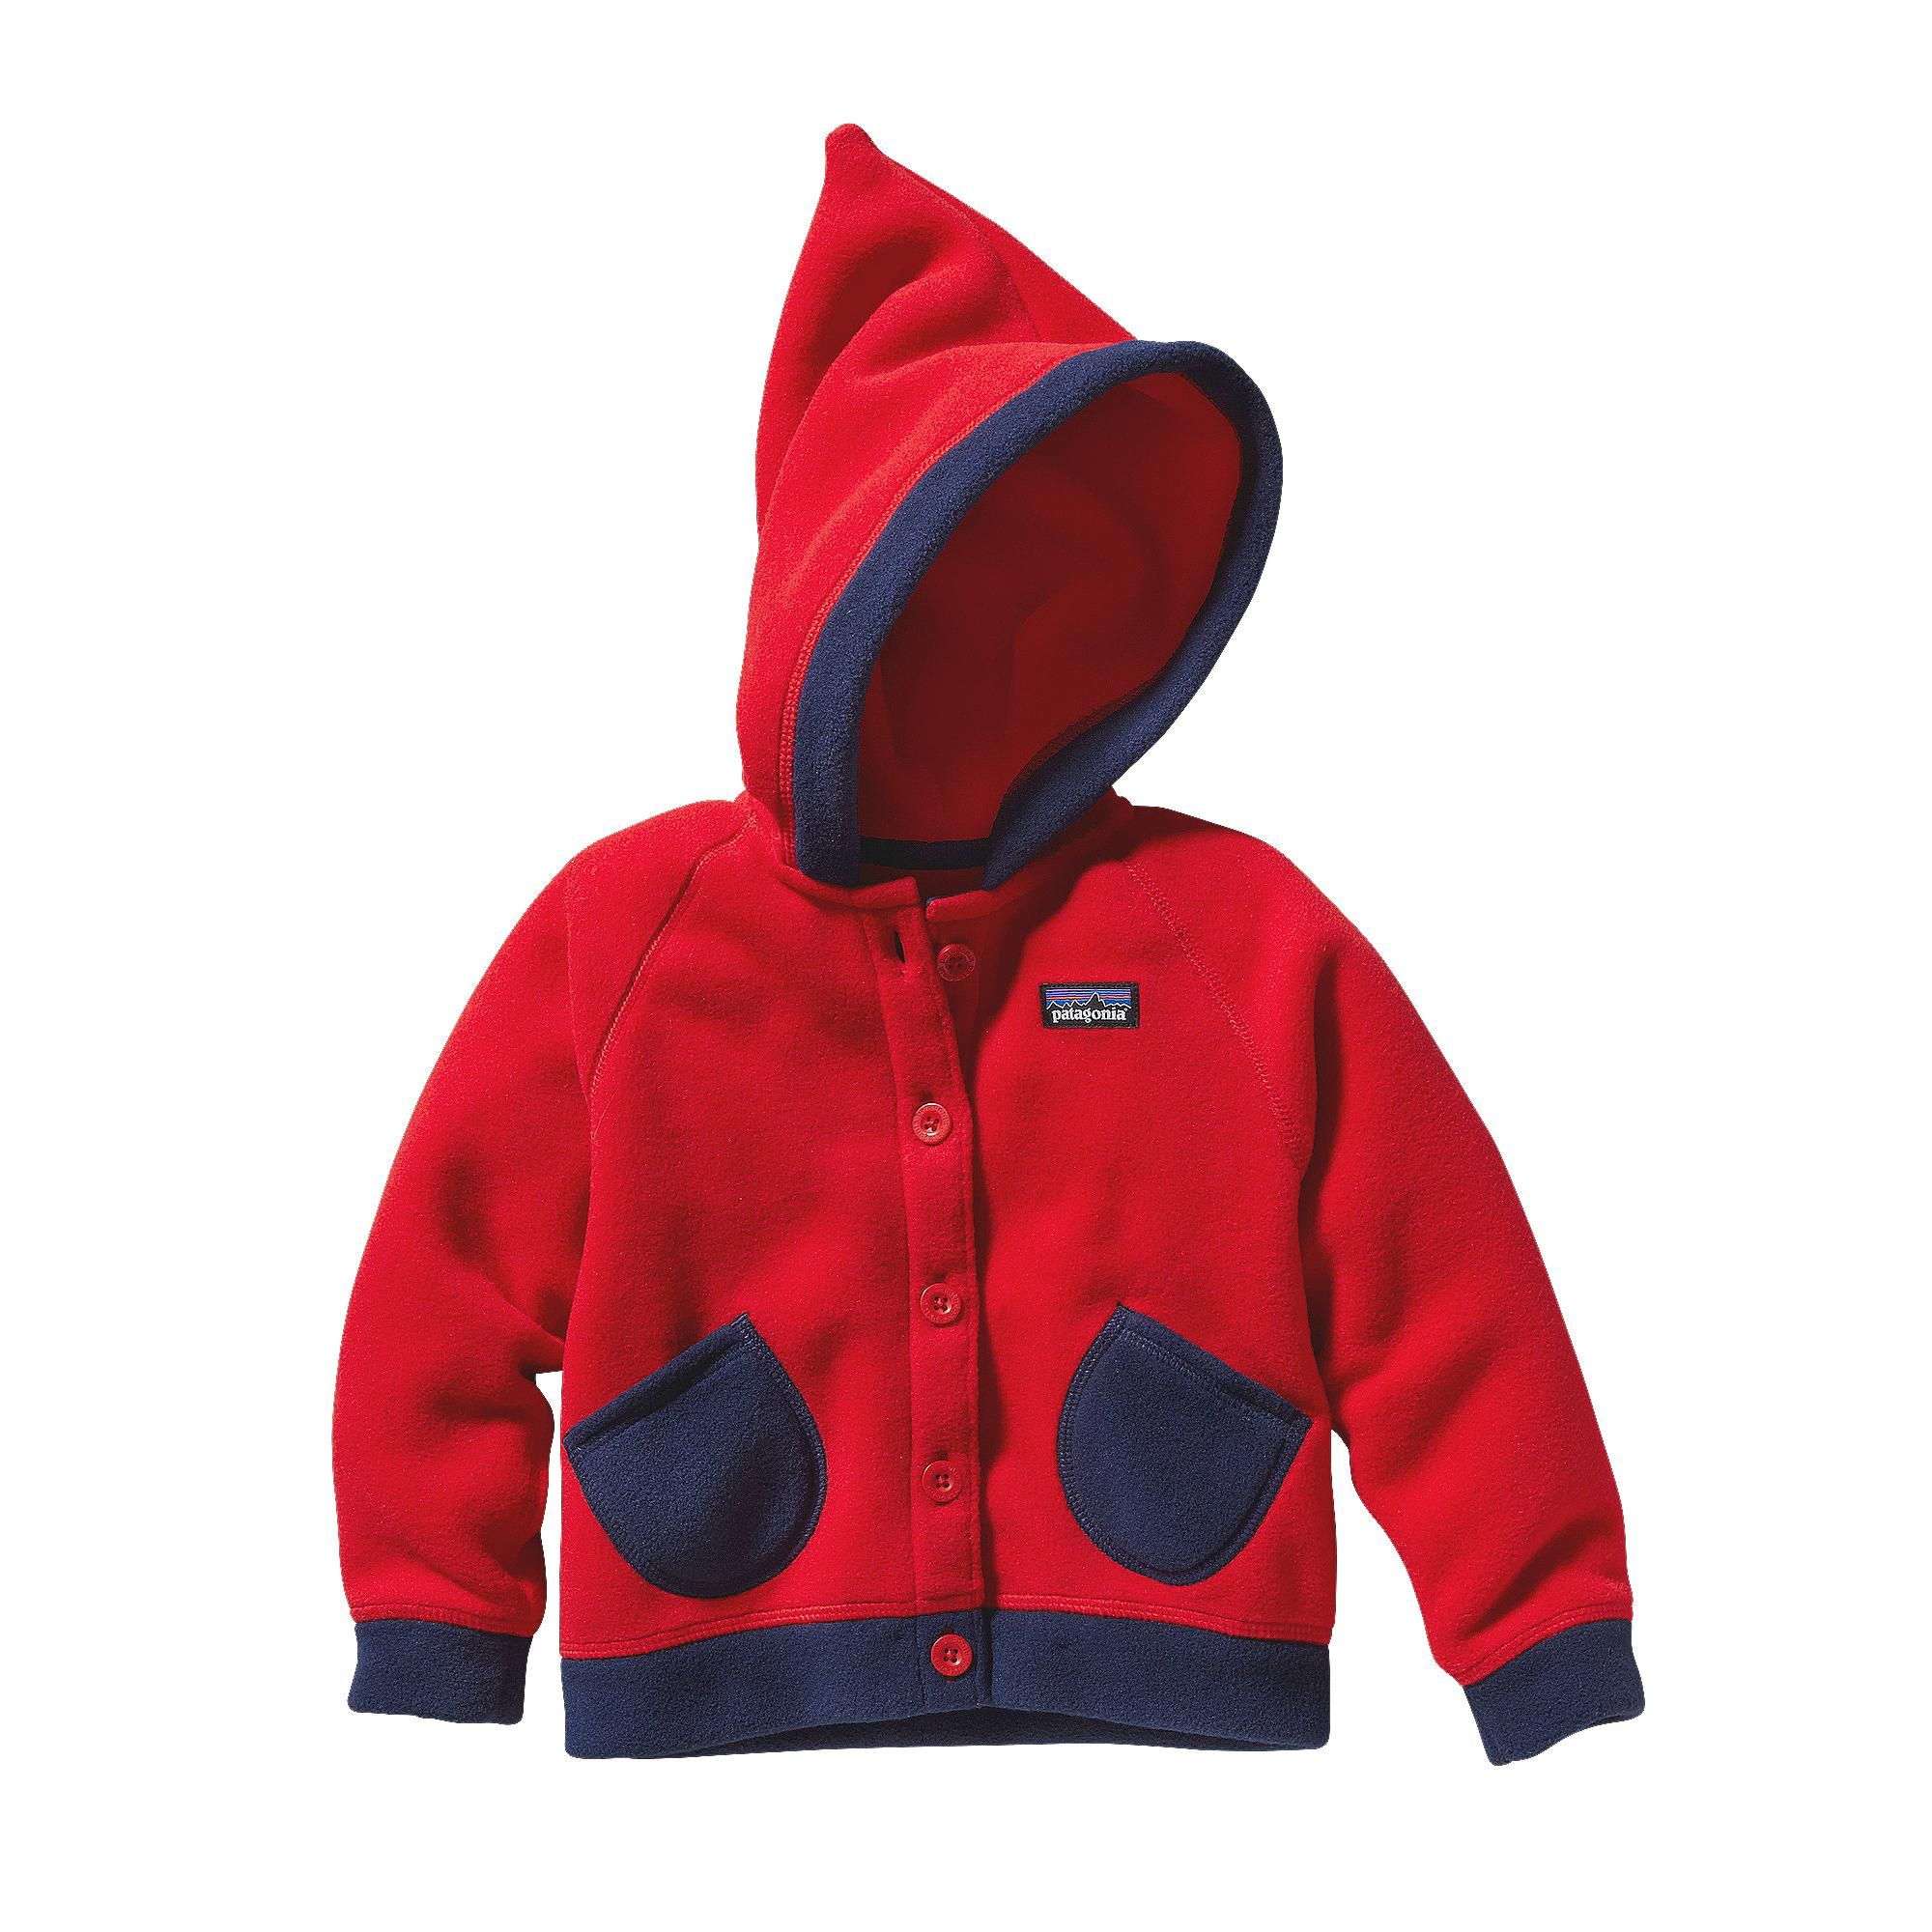 Patagonia Baby Swirly Top Jacket - An impishly pointed hood tops ...